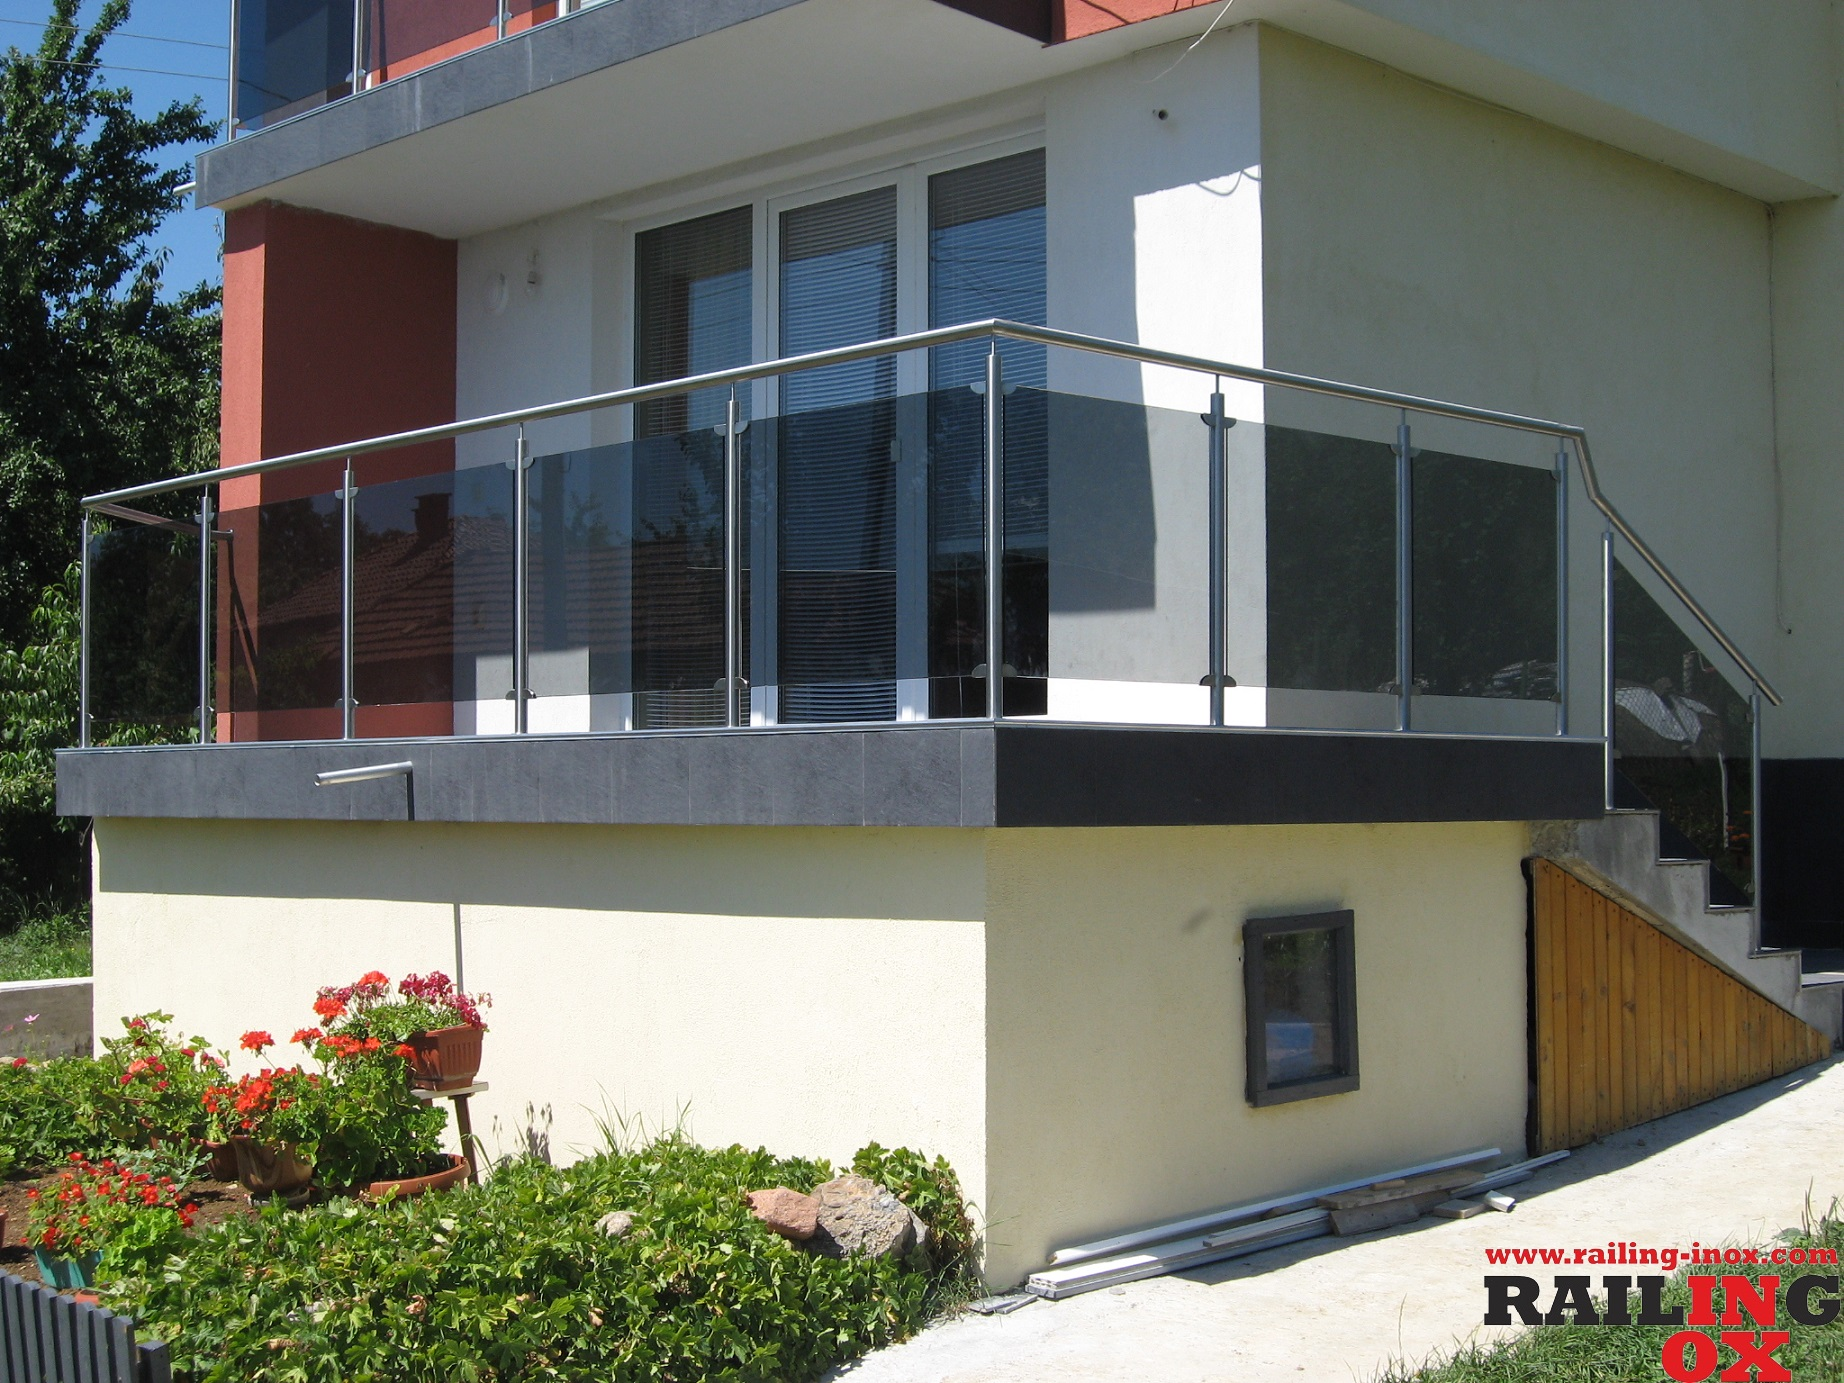 RAILINGS FROM INOX  AND GLASS